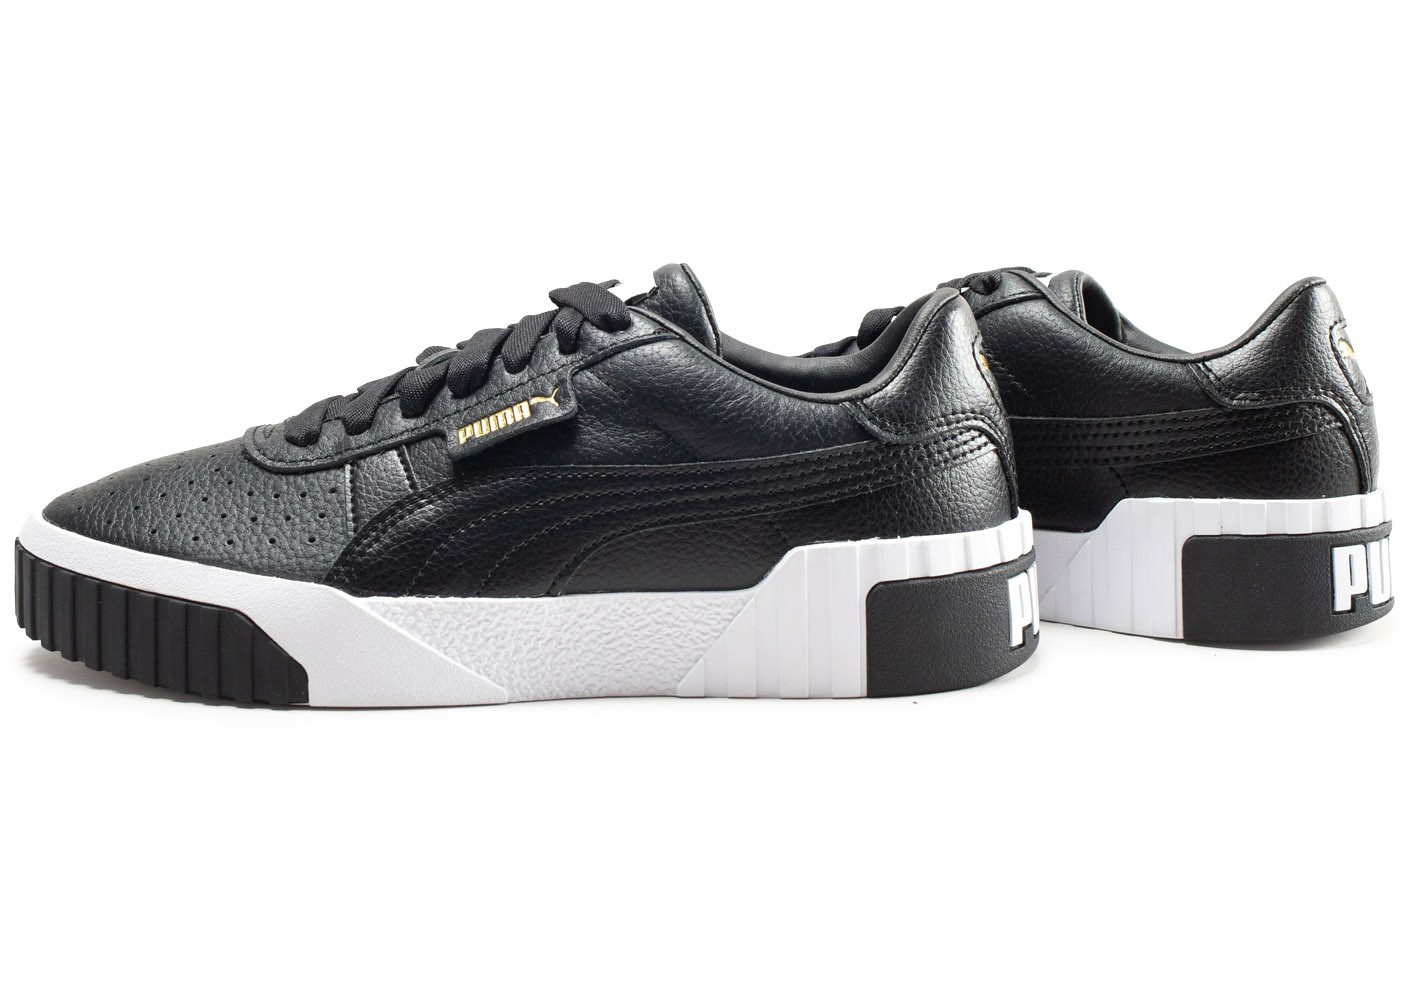 chaussures homme noir puma,chaussures homme femme puma by